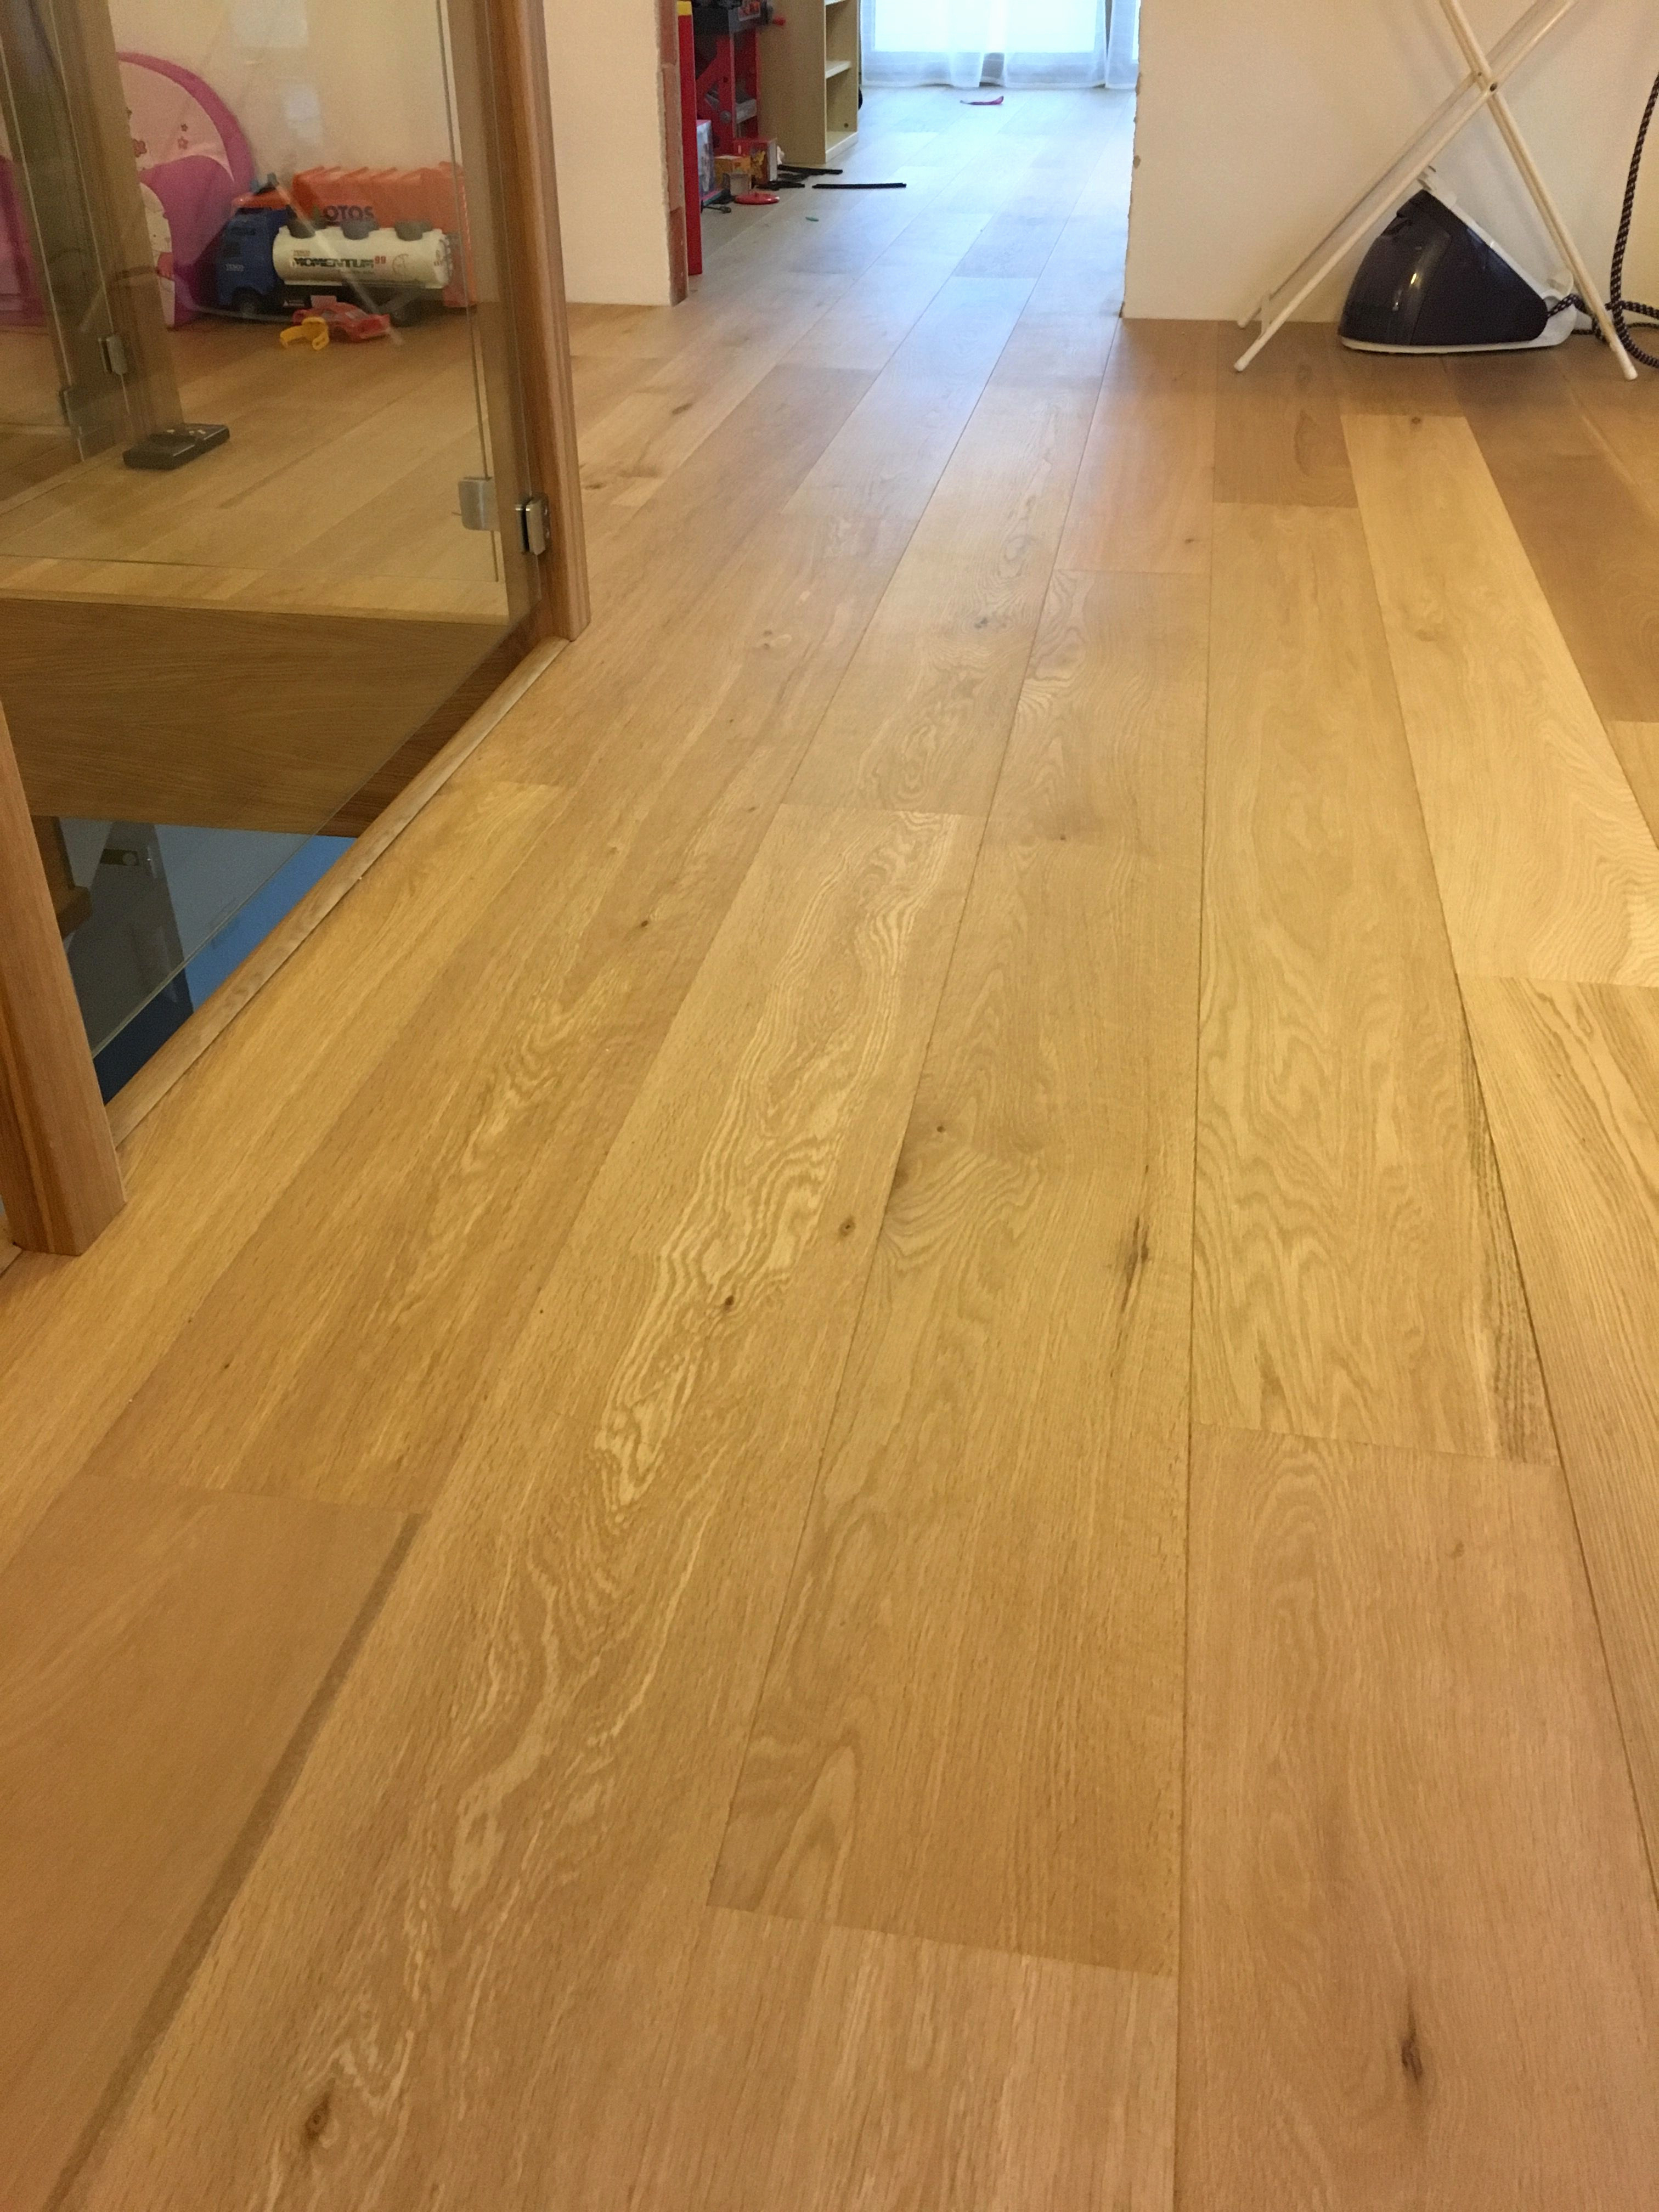 prefinished hardwood flooring cost per square foot of how to install wood floors the pros and cons of prefinished hardwood inside how to install wood floors how is wood flooring installed